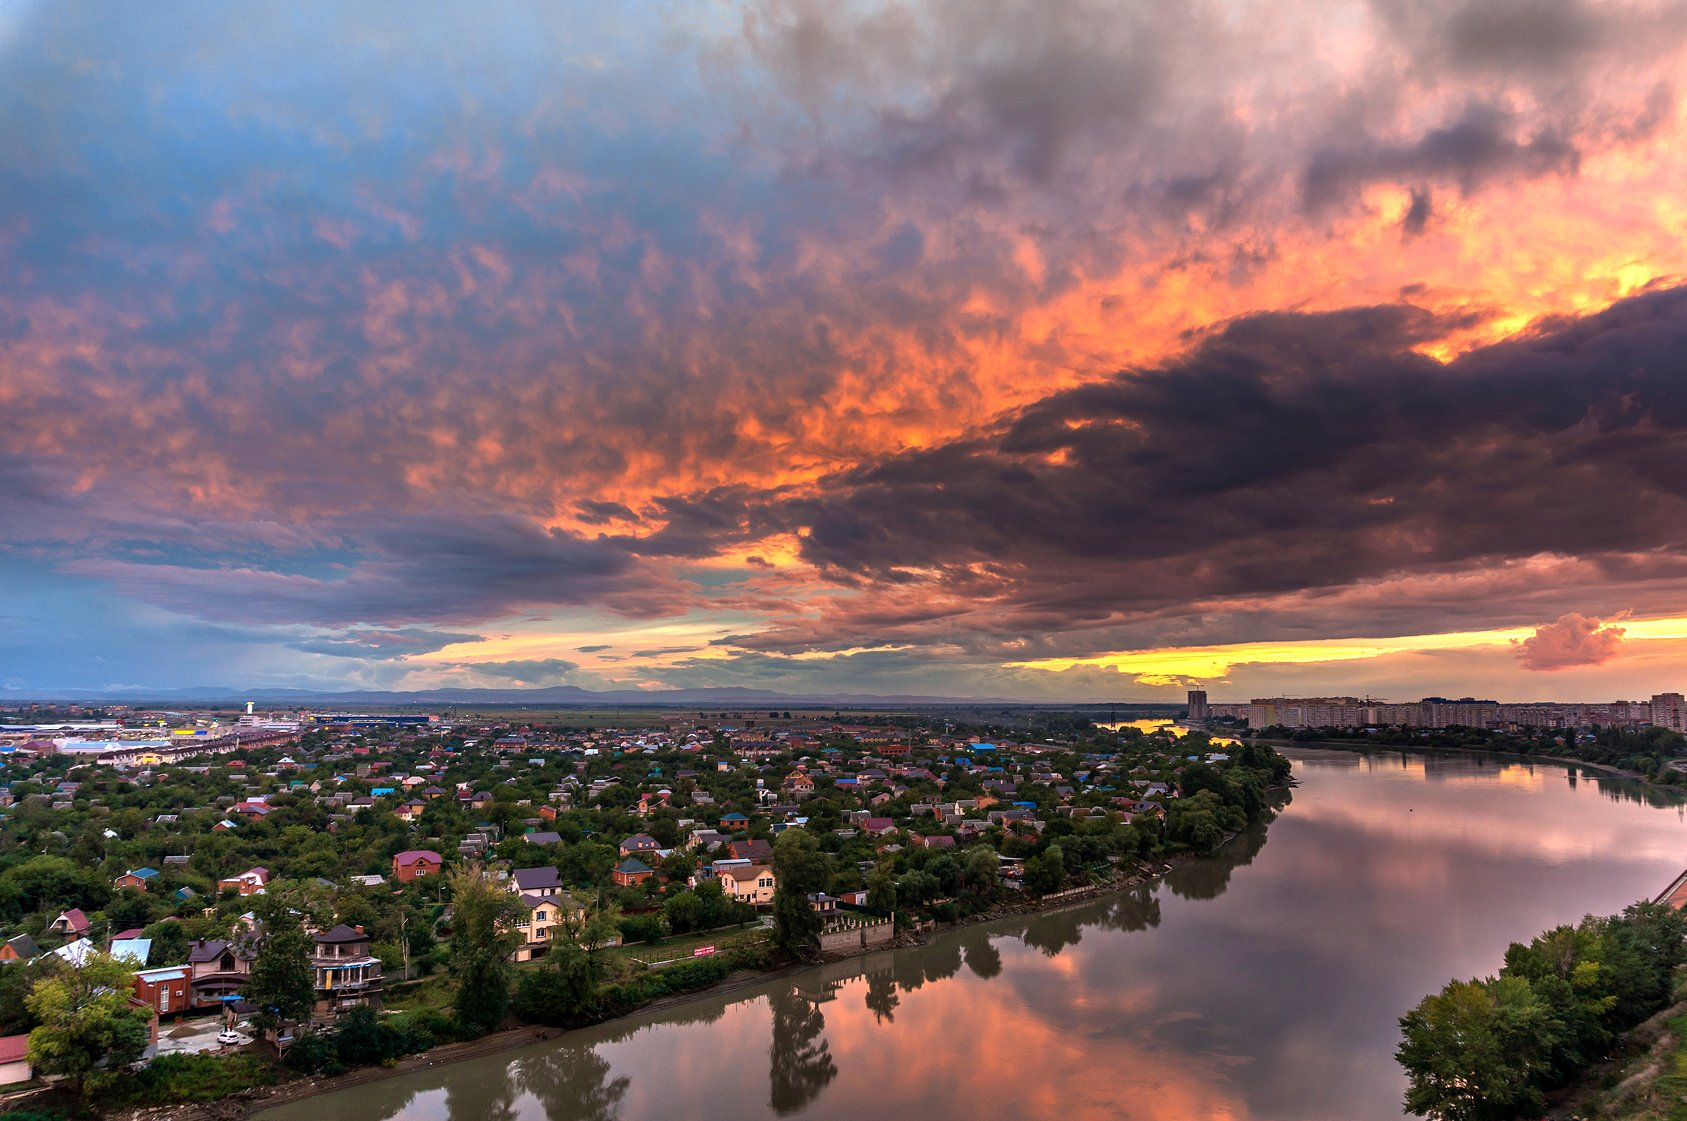 krasnodar, sunrise, city, river, light, sky, Сергей Тихомиров